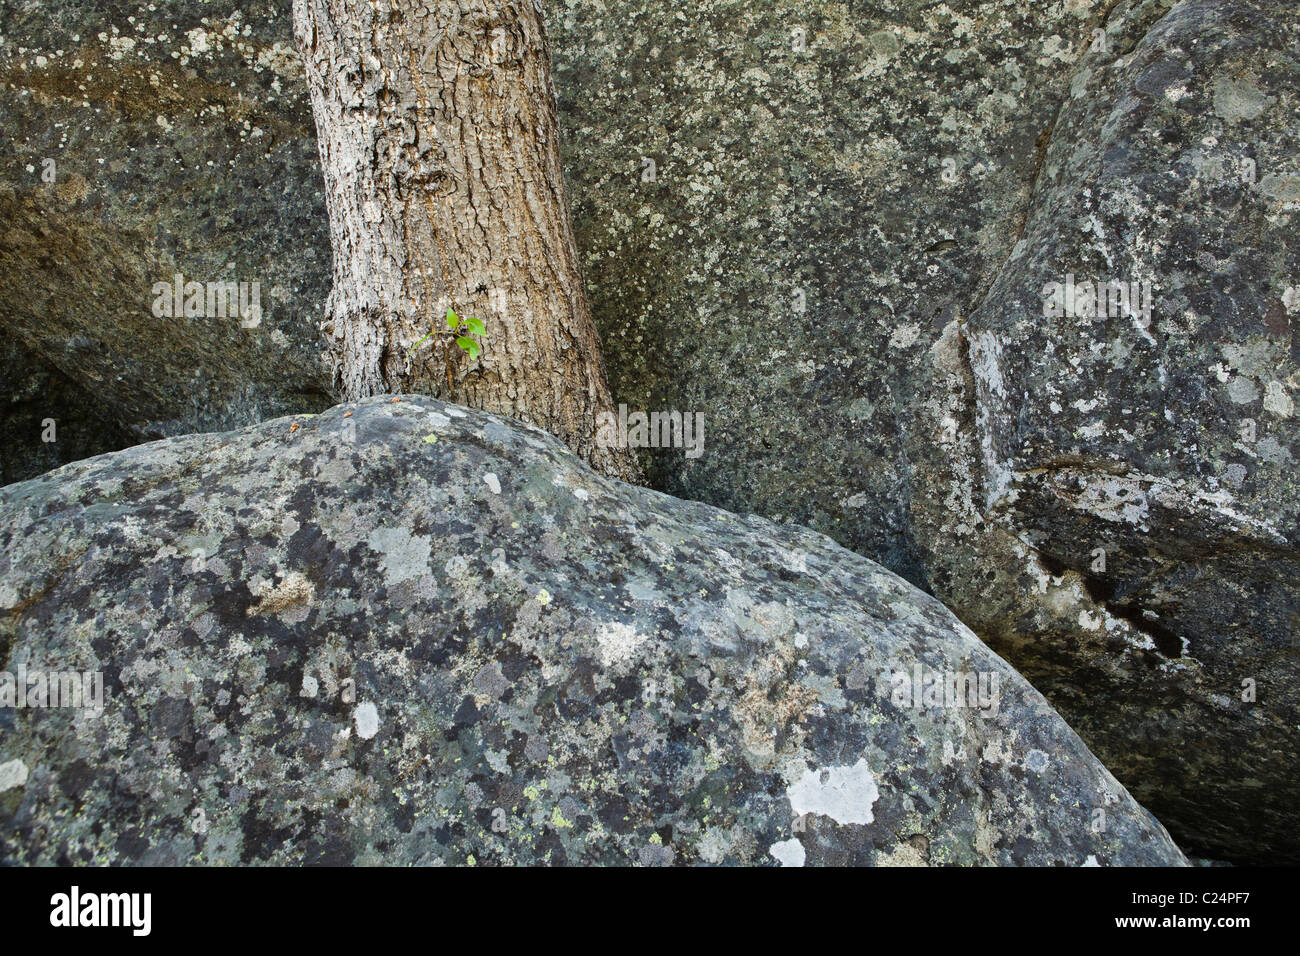 A tree growing from a crack between two boulders. - Stock Image